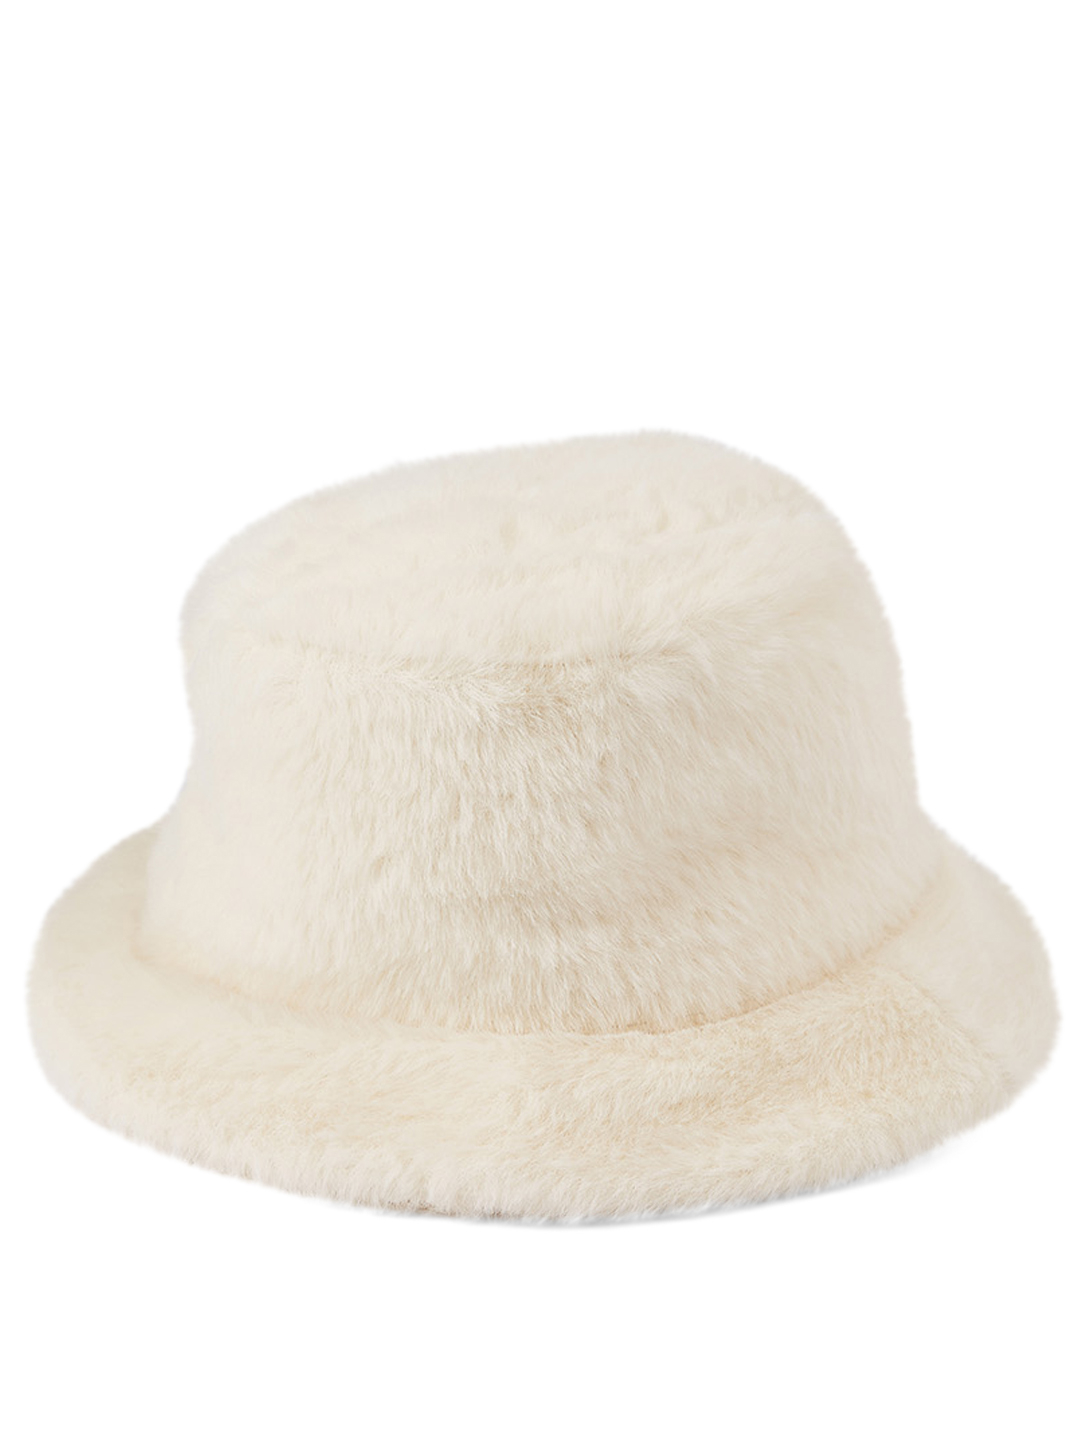 RUSLAN BAGINSKIY Faux Fur Bucket Hat Women's White